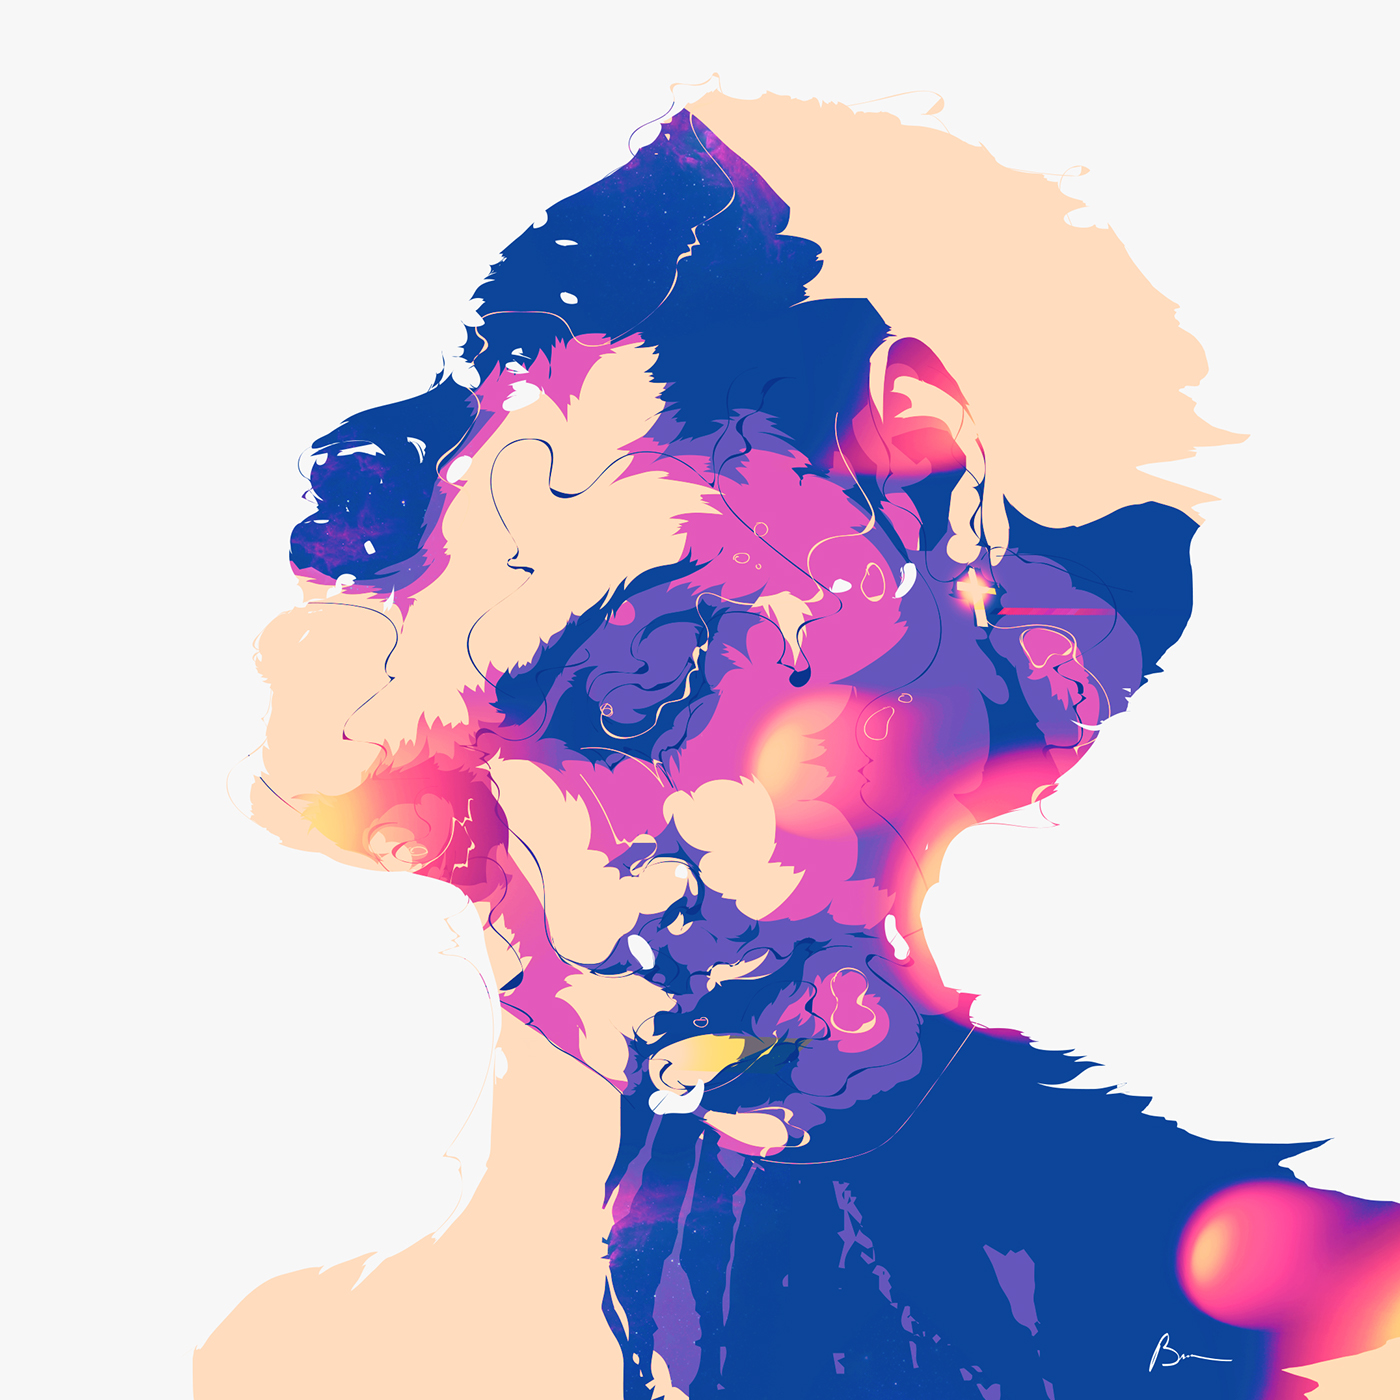 Kwabs portrait after effects gif Fun aniwall face colors photoshop